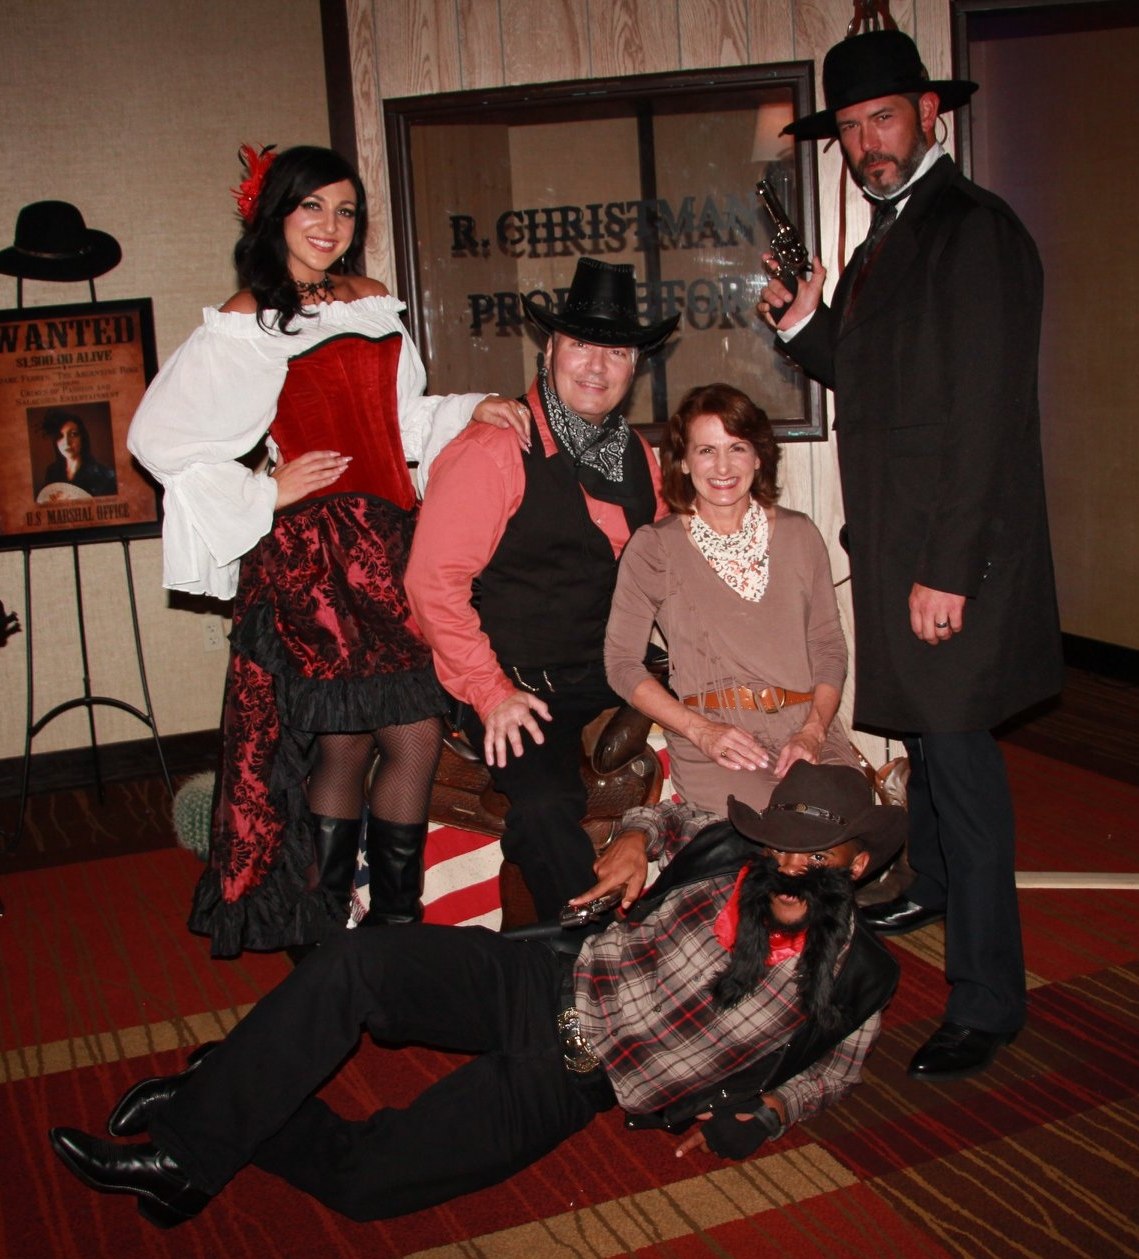 Enjoying the photo booth at the Wild West Showcase with their instructors, Quinton & Theresa MacAdam & Robert Green.